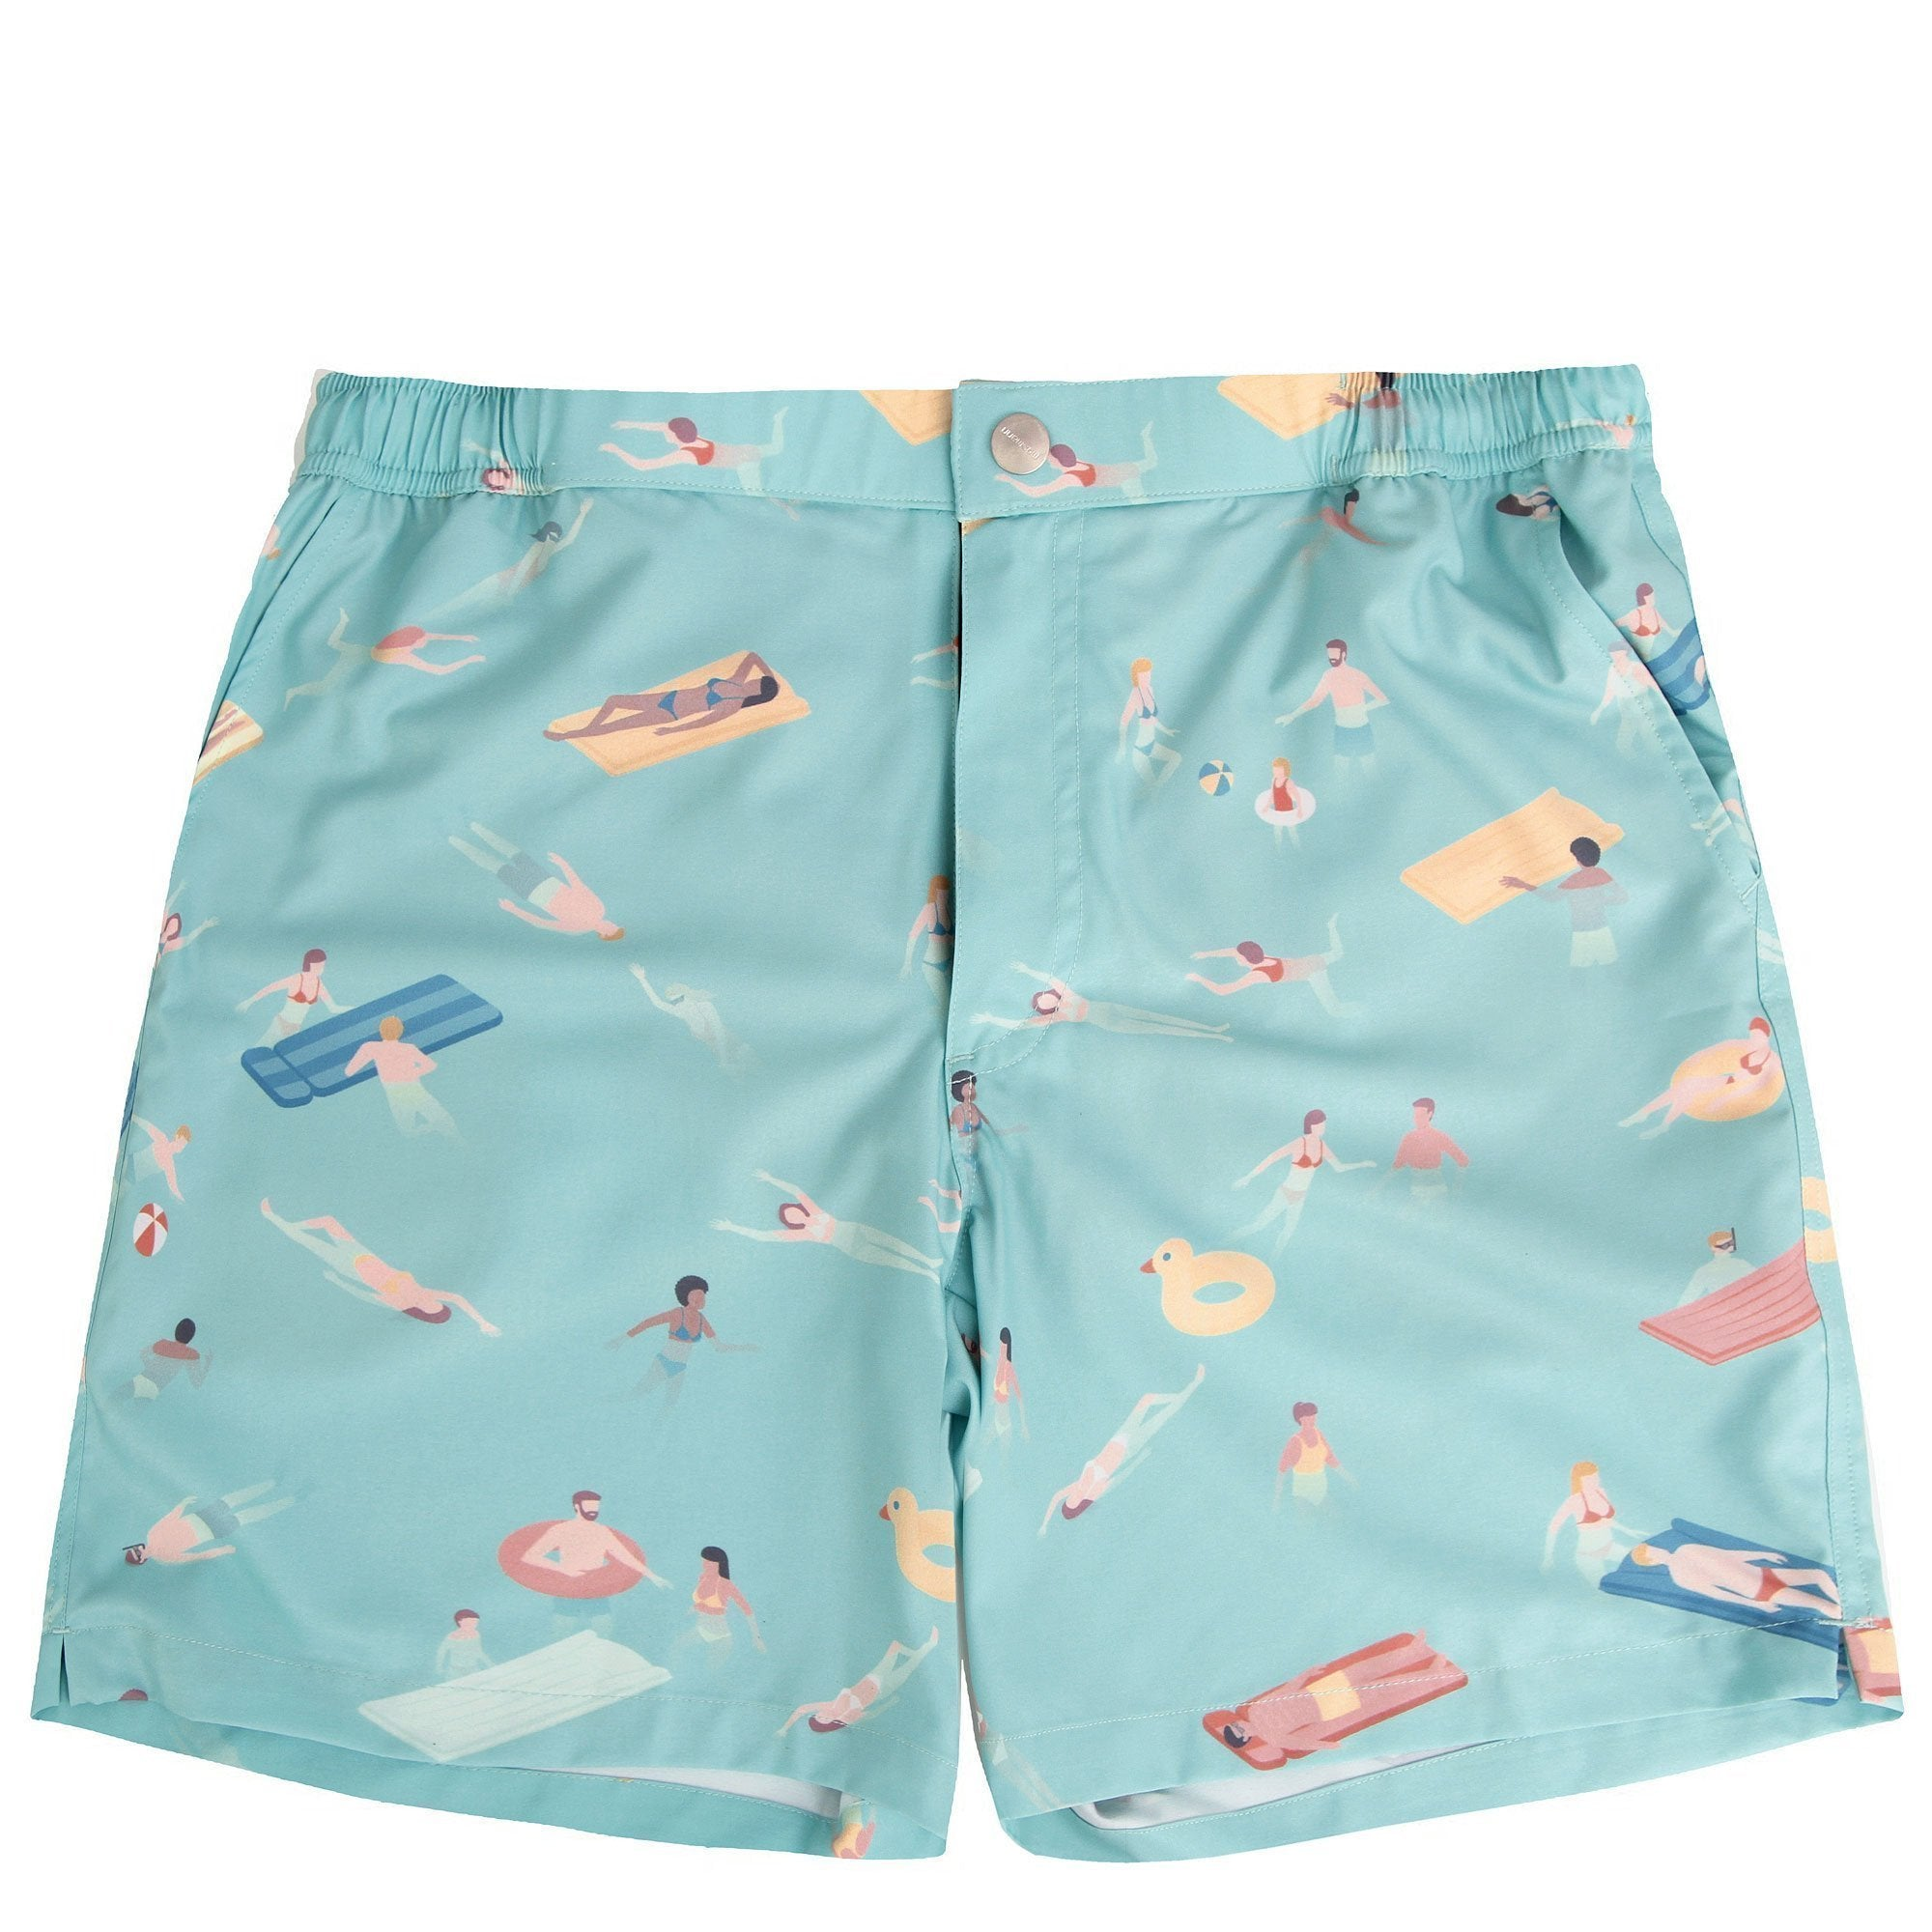 Swimming-pool-print-mens-swim-shorts.jpg